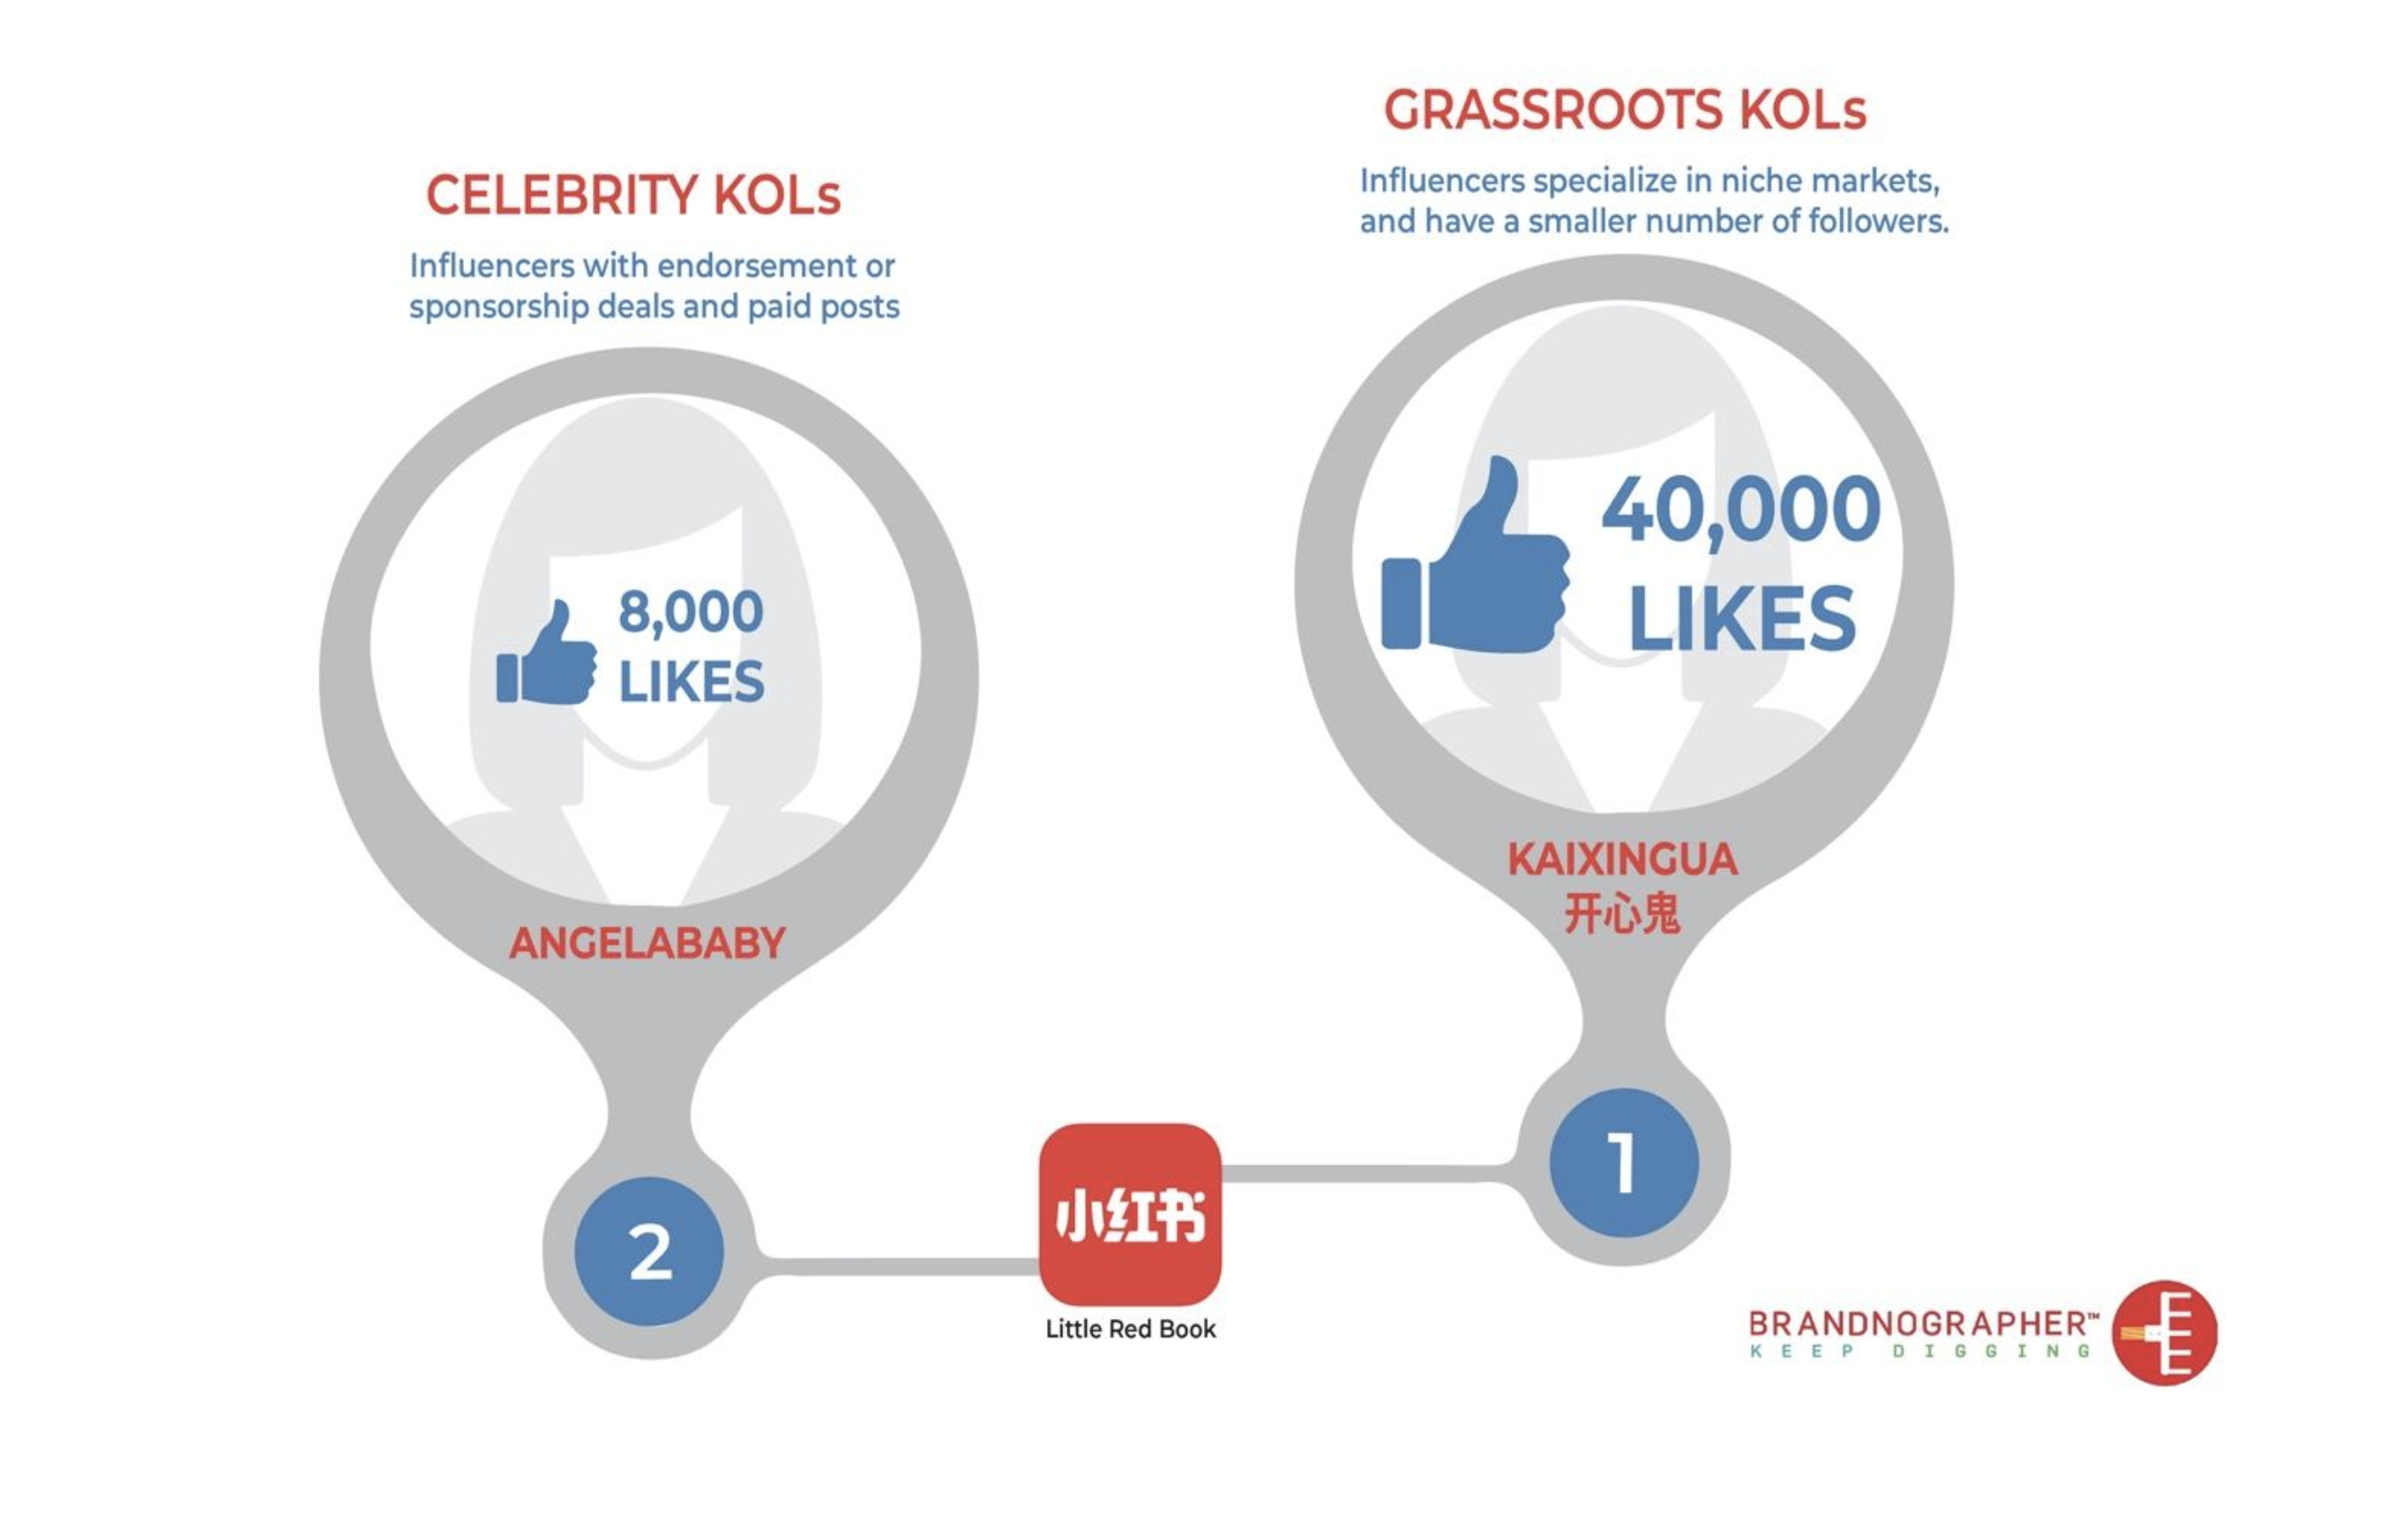 Authentic, grassroots endorsements are now more valuable than sponsored celebrity posts